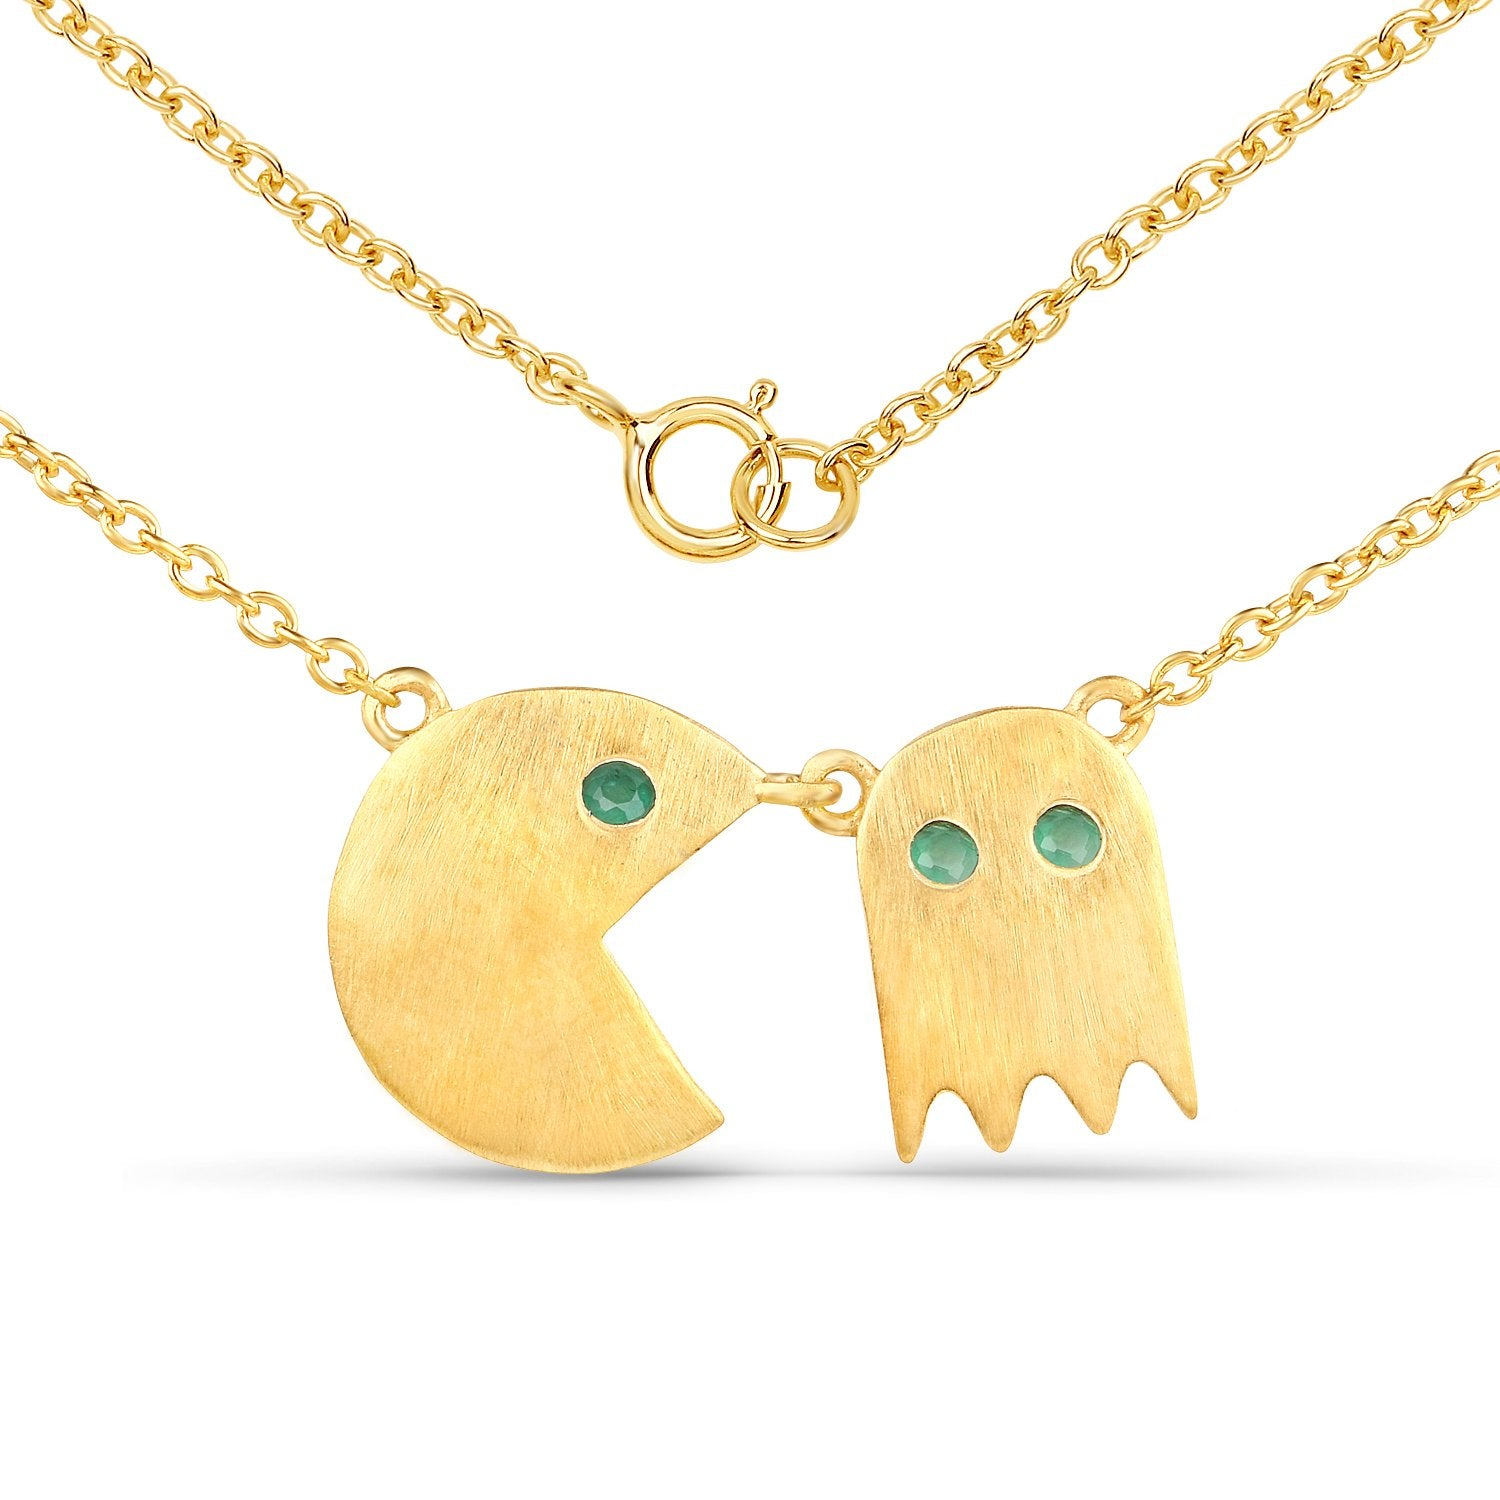 LoveHuang 0.09 Carats Genuine Emerald Pacman Pendant Solid .925 Sterling Silver With 18KT Yellow Gold Plating, 18Inch Chain, Matte Finish